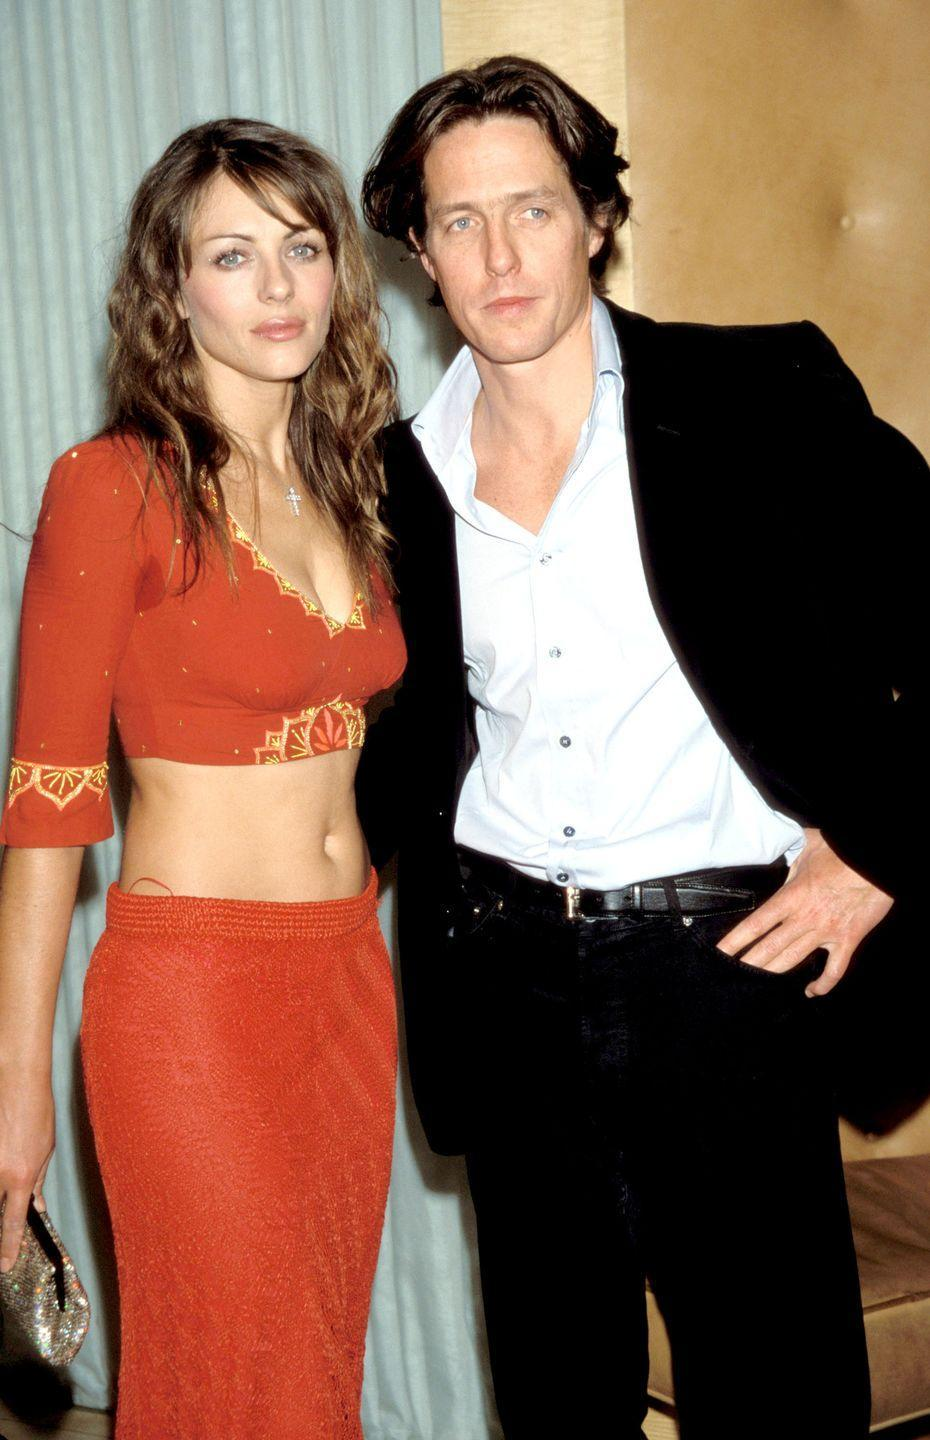 <p>Elizabeth and Hugh broke up in 2000 after 13 years together. But the duo remain friends and often speak positively about the other to the public.</p>